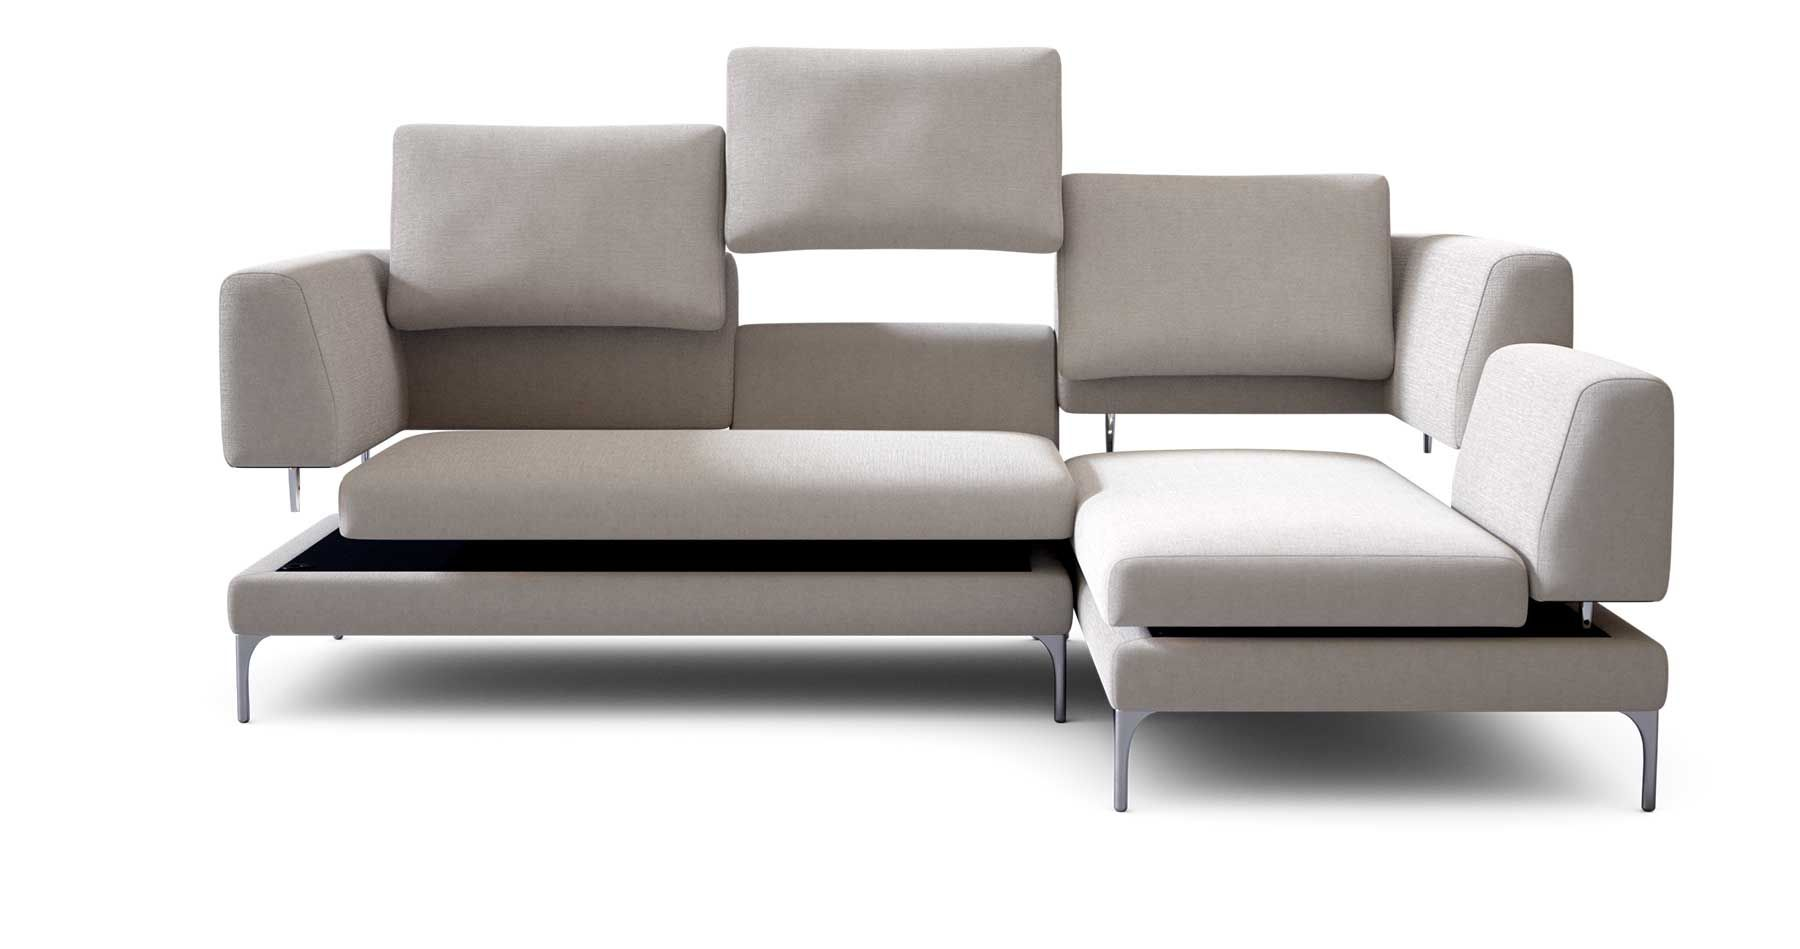 Plaza Modular Sofa Contemporary Design Lounge Couch King Living